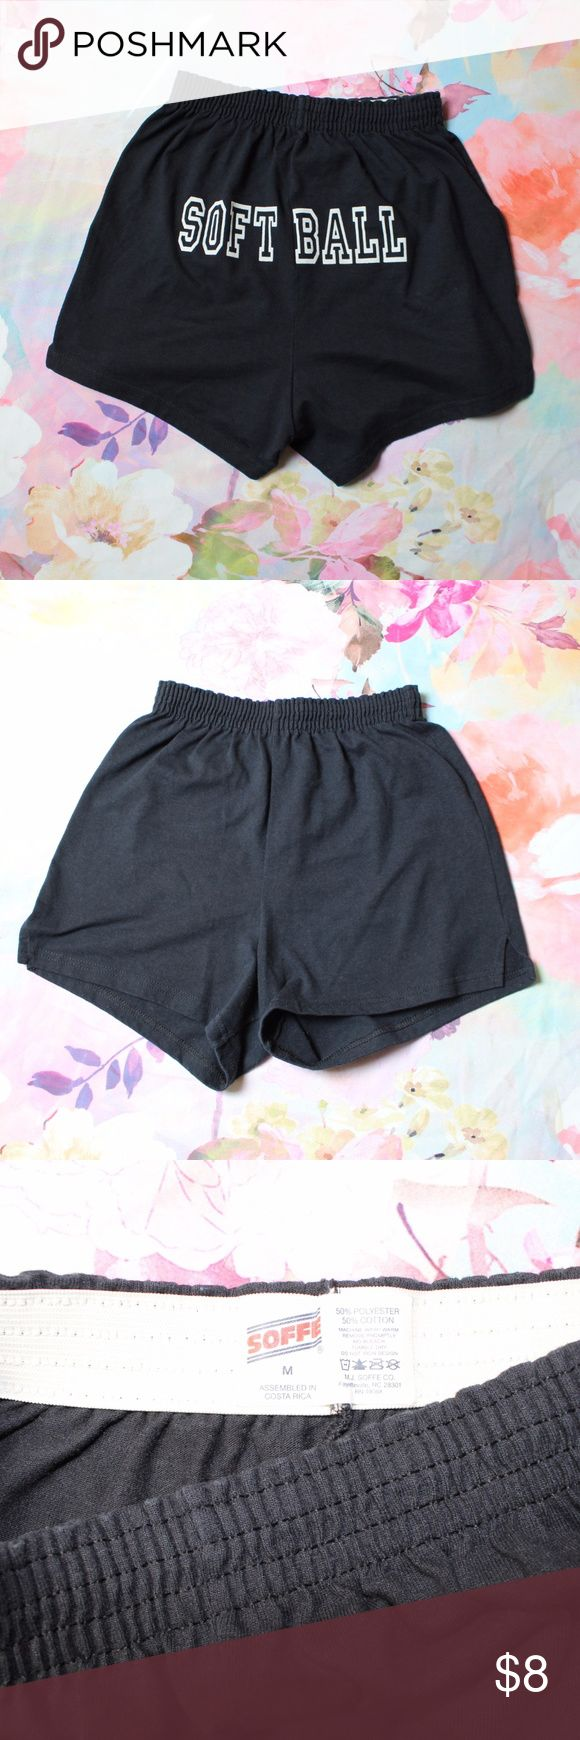 Black & White Softball Soffe Shorts Excellent gently loved condition. No holes, stains, tears or other flaws.   My bundle discount is 15% off 2+!!  Feel free to ask any questions, additional measurements or photos.  Please submit offers through the offer button. Soffe Shorts